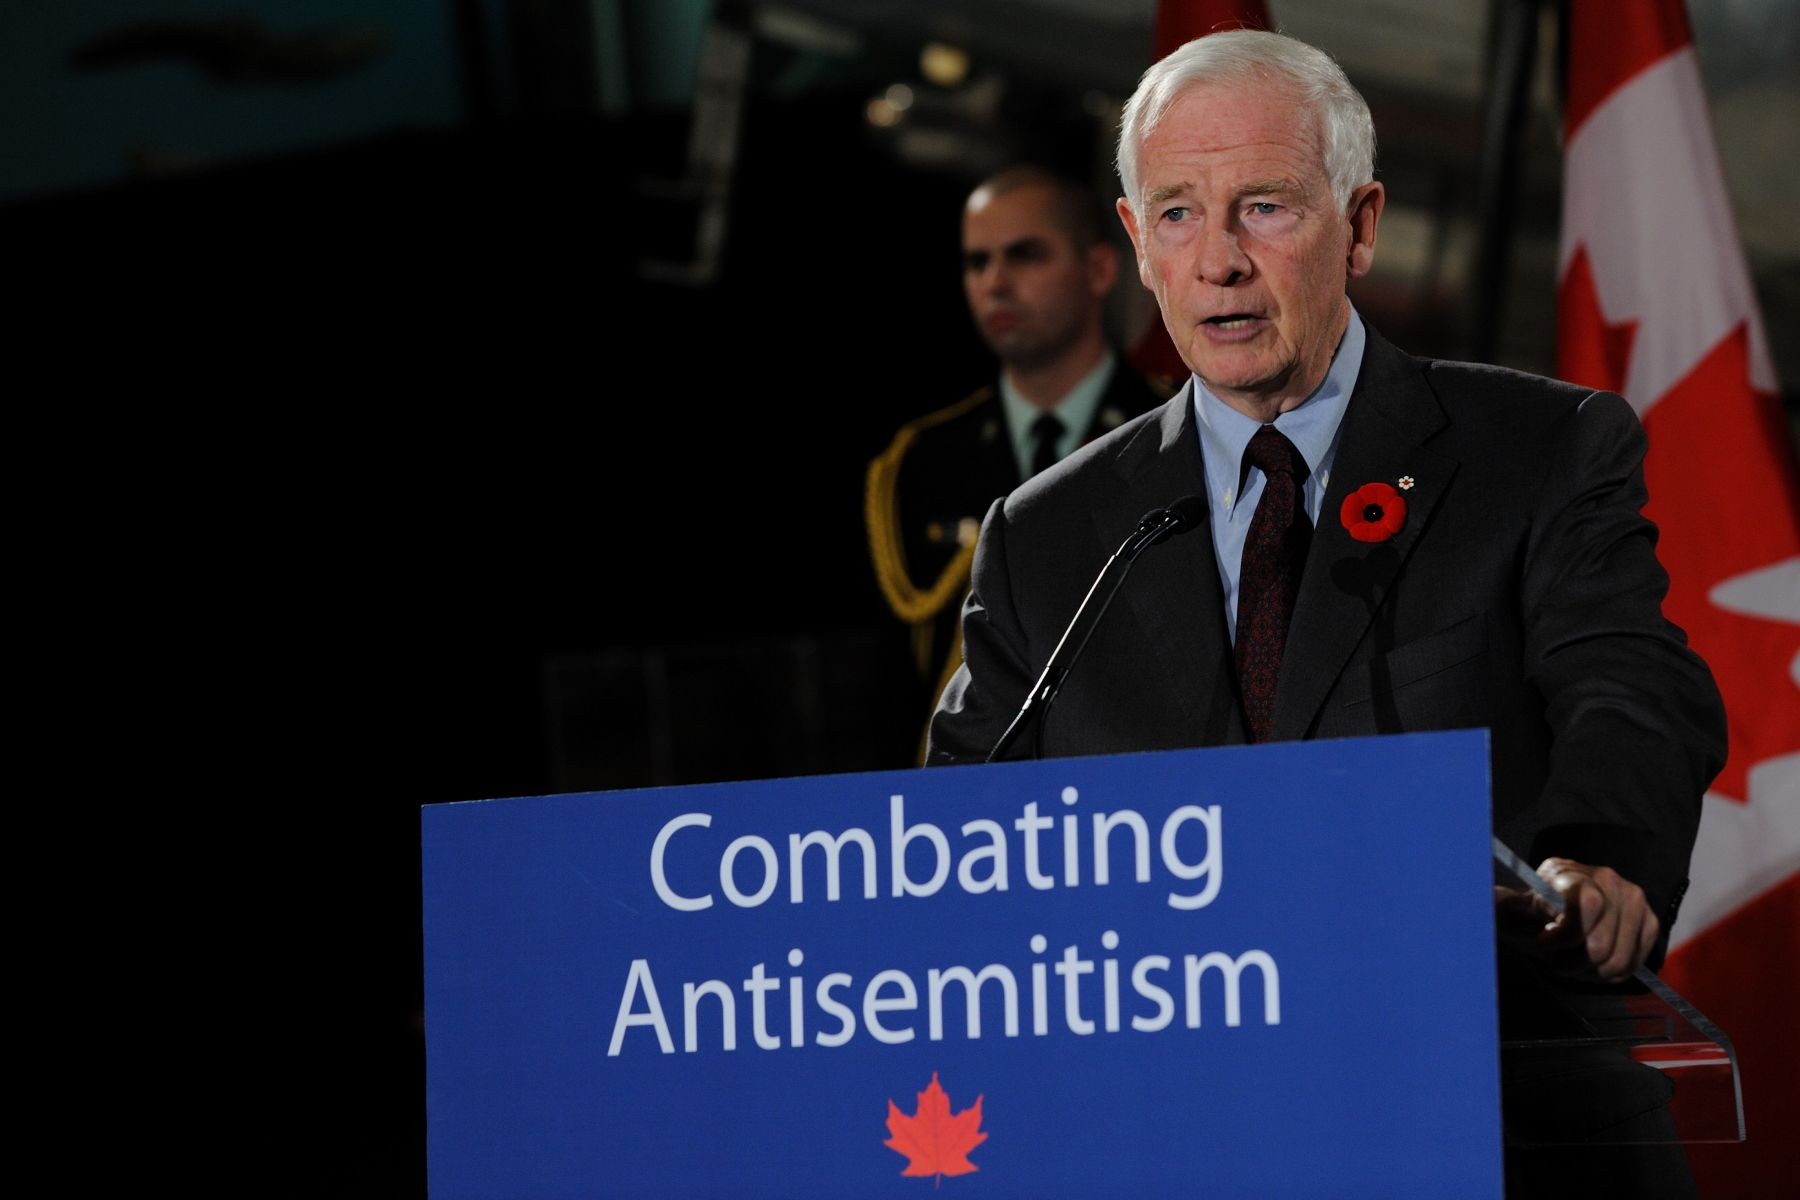 The Governor General delivered remarks during the opening reception of the Ottawa Conference on Combating Antisemitism at the Canada Aviation and Space Museum.